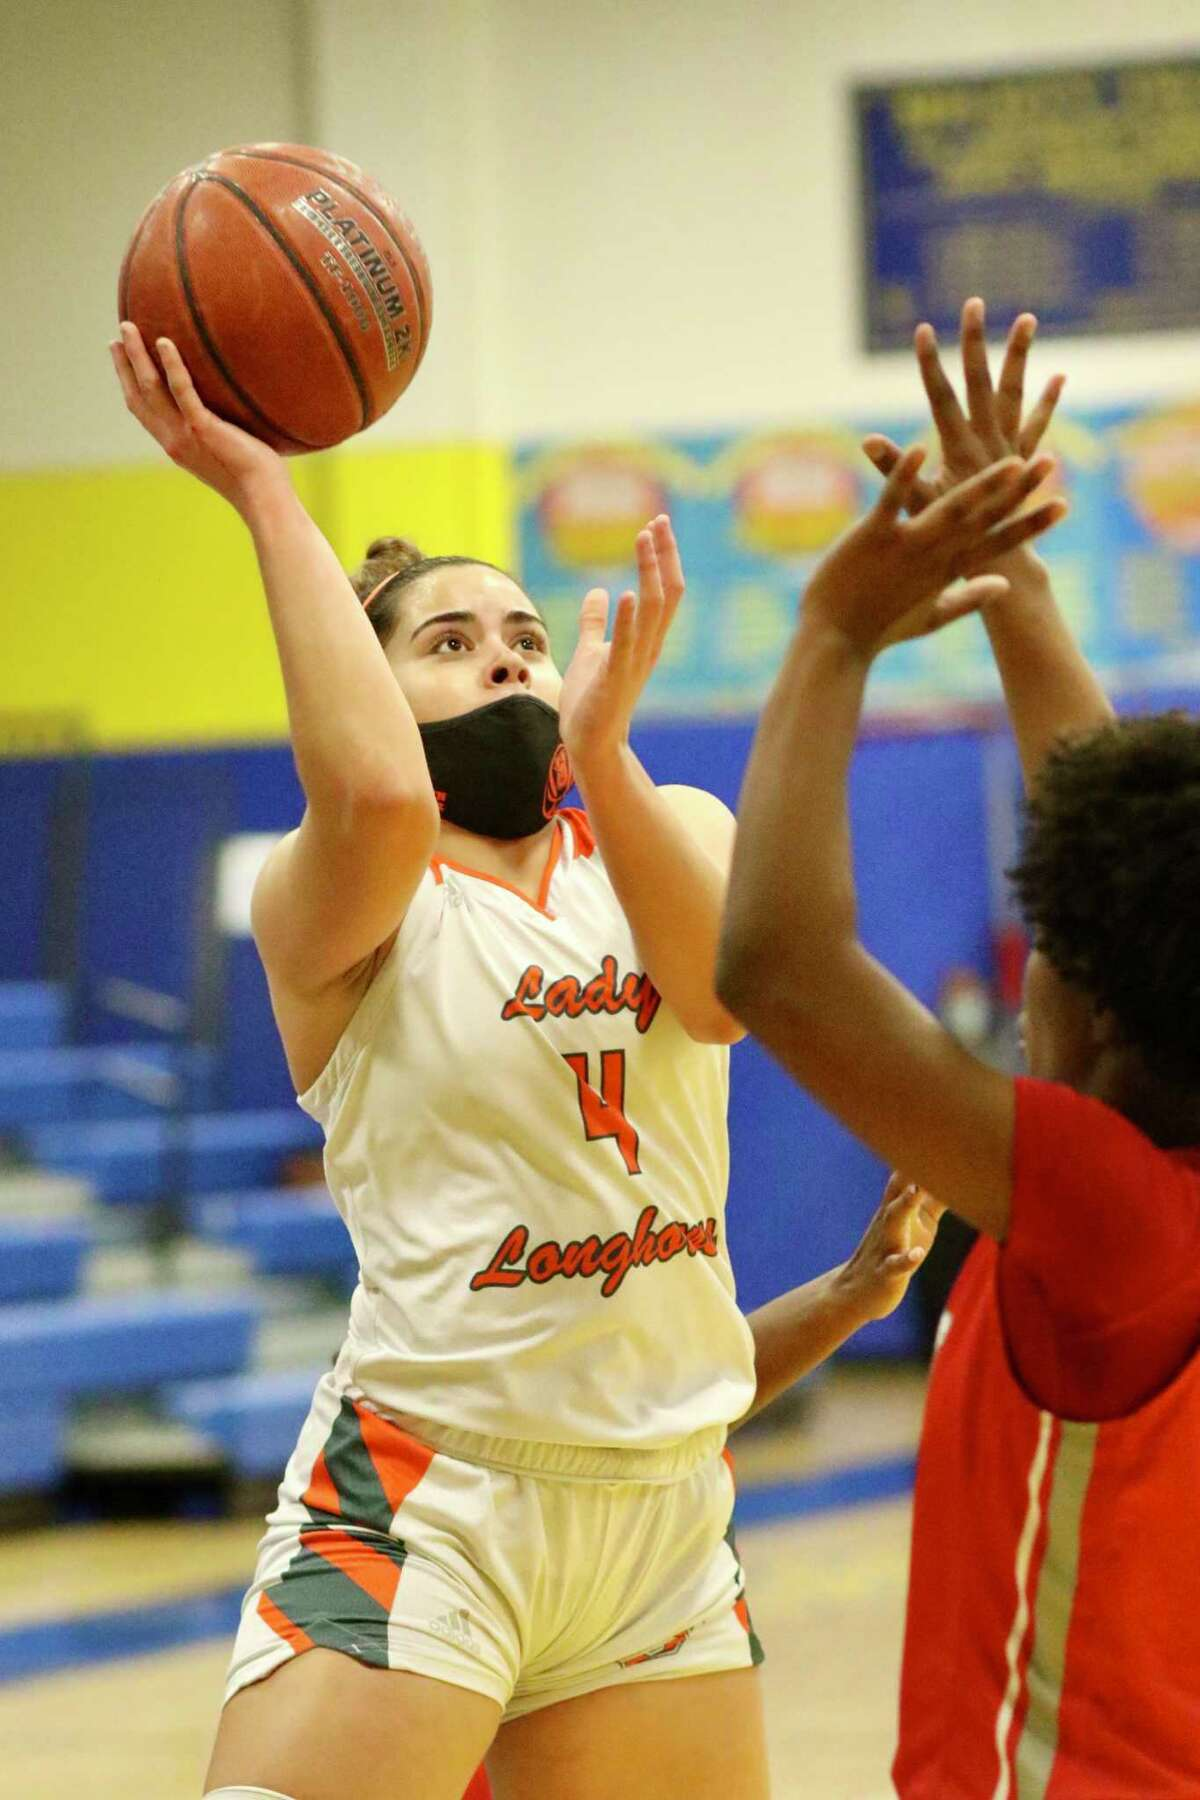 Evelyn Quiroz led United with 14 points in a 68-66 win Thursday over Taft to open the postseason.